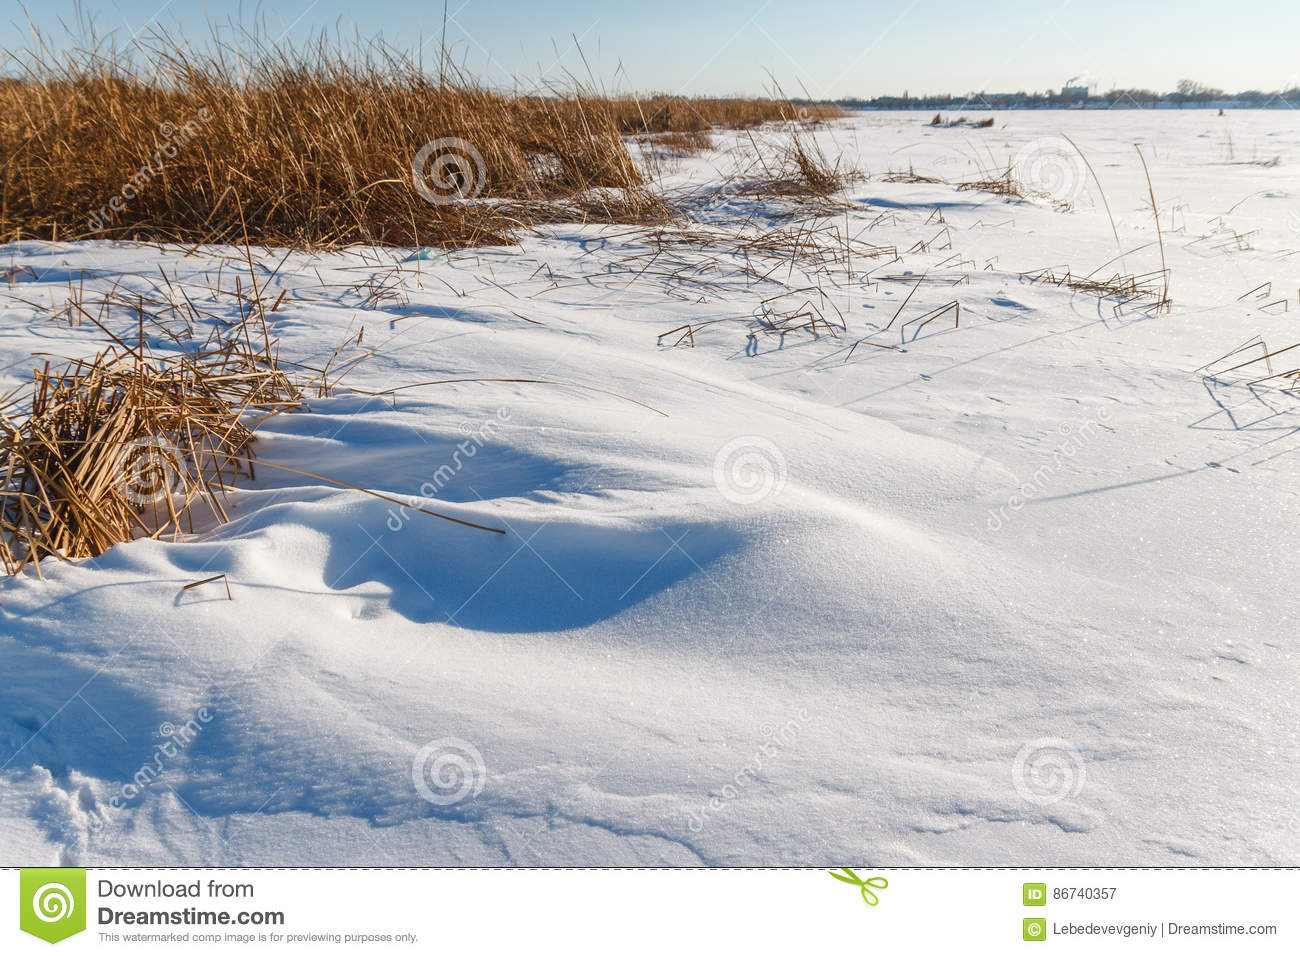 Download The Frozen River With A Dry Cane On The Island Stock Image - Image of nature, hoarfrost: 86740357